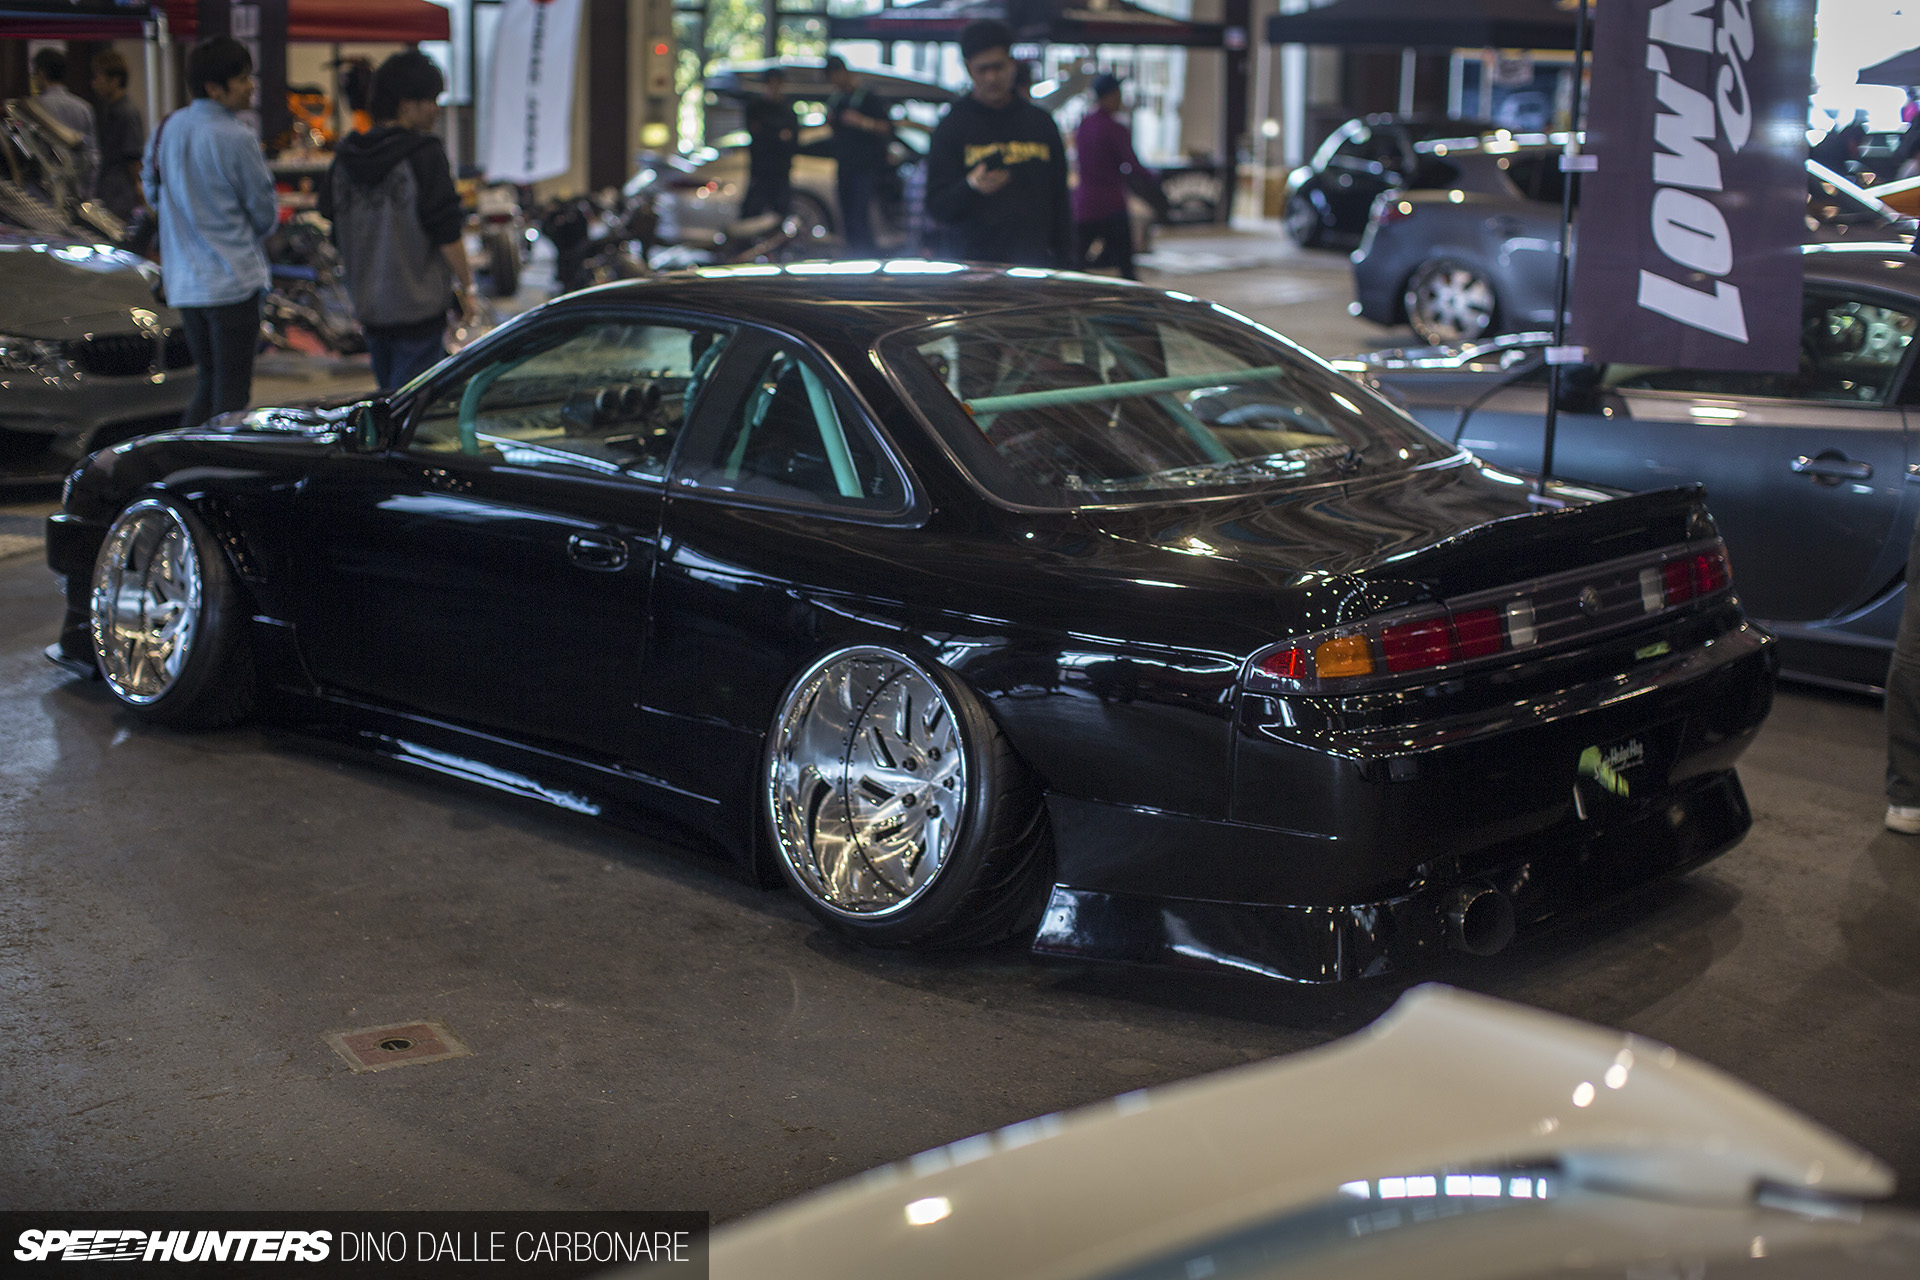 The Freshest S14 You'll See Today